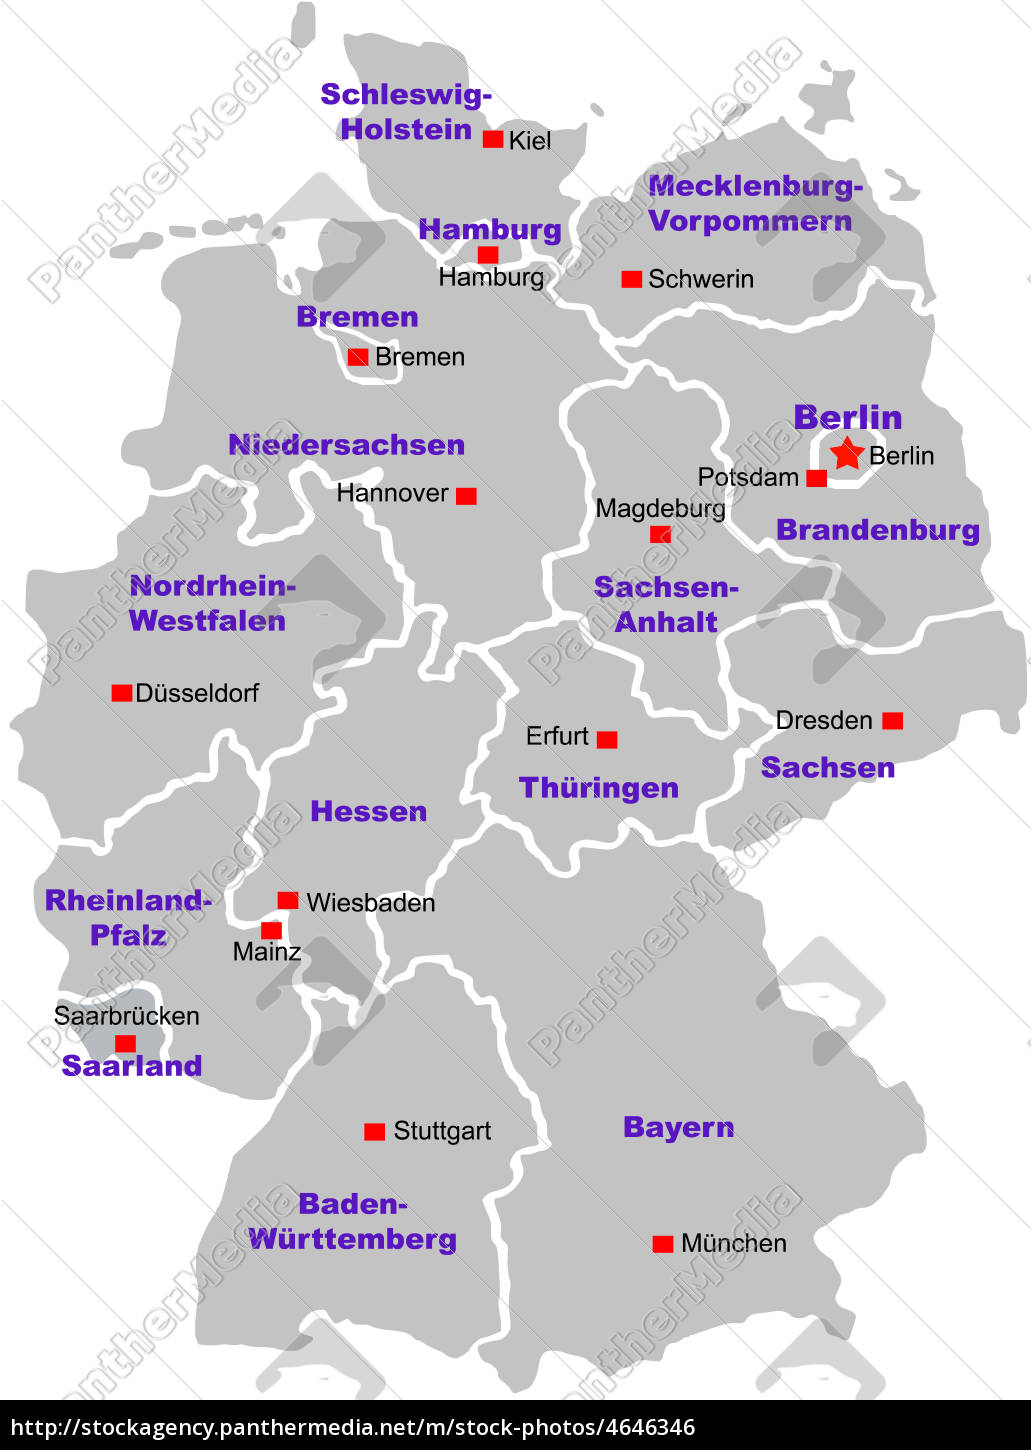 Germany Map Royalty Free Image 4646346 Panthermedia Stock